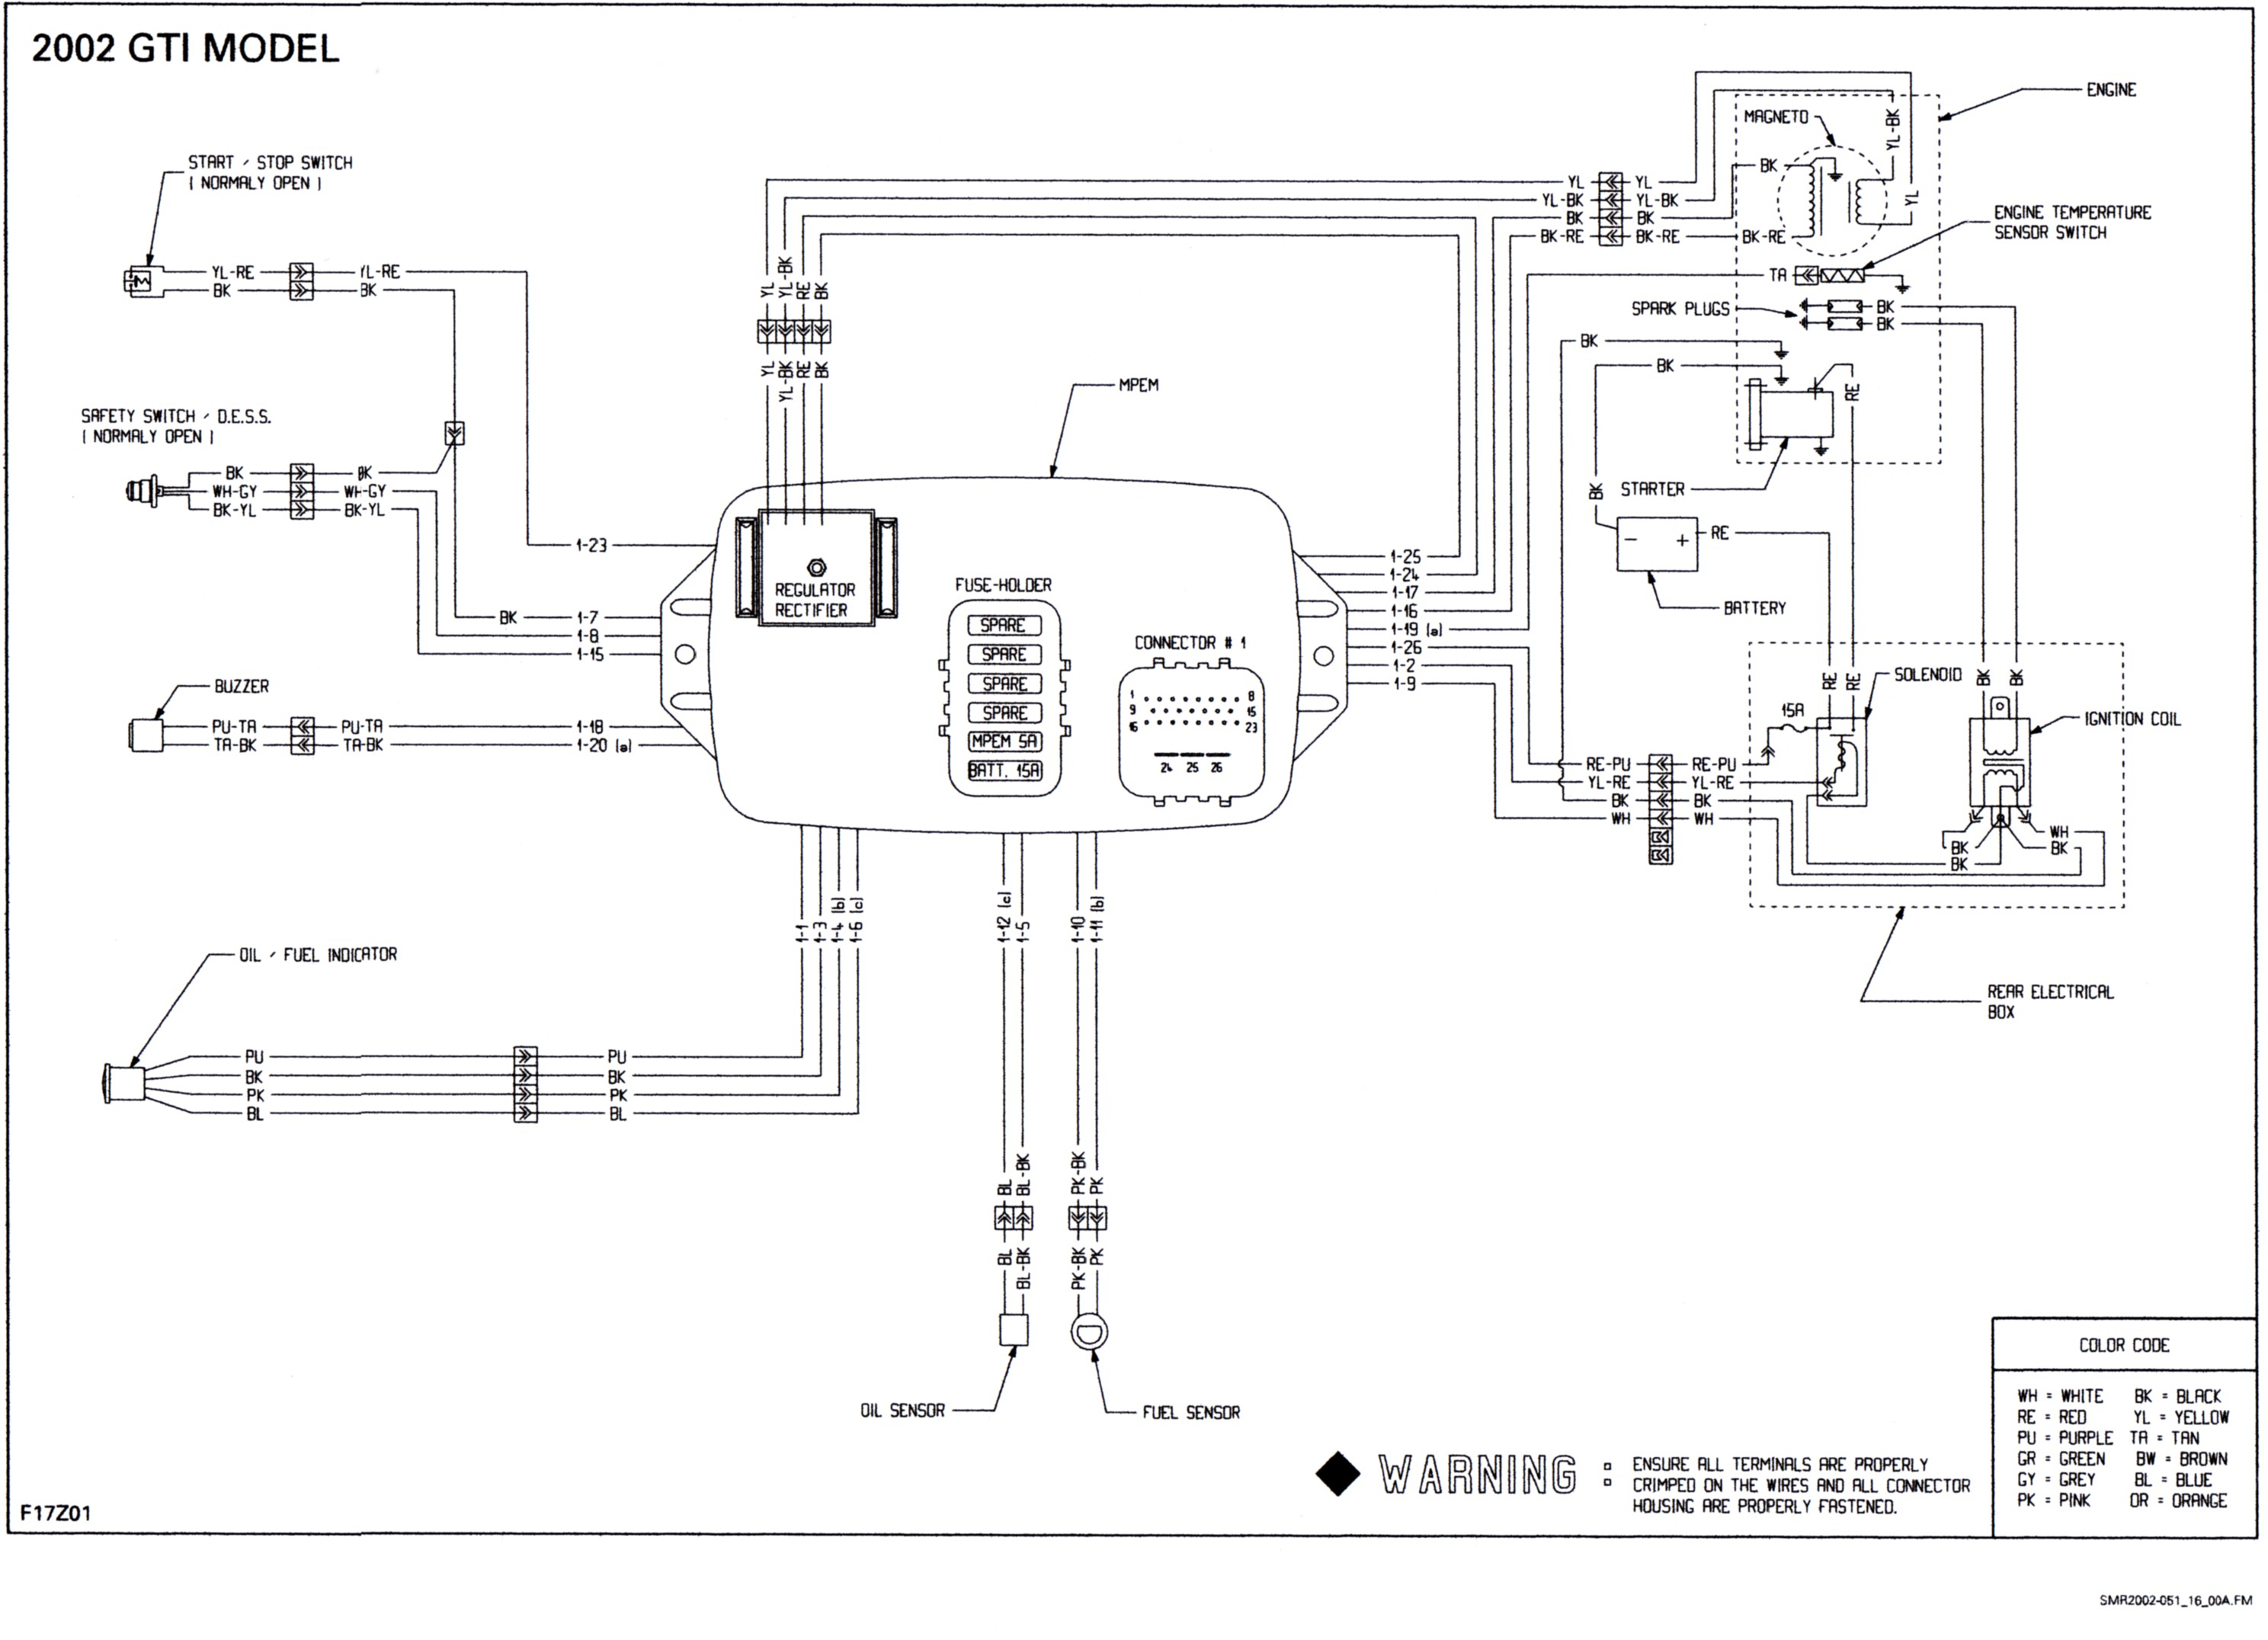 Sea Doo Starter Wiring Diagrams Great Design Of Diagram Hd Sportster 1995 Gtx Parts Get Free Image About 1993 Gts